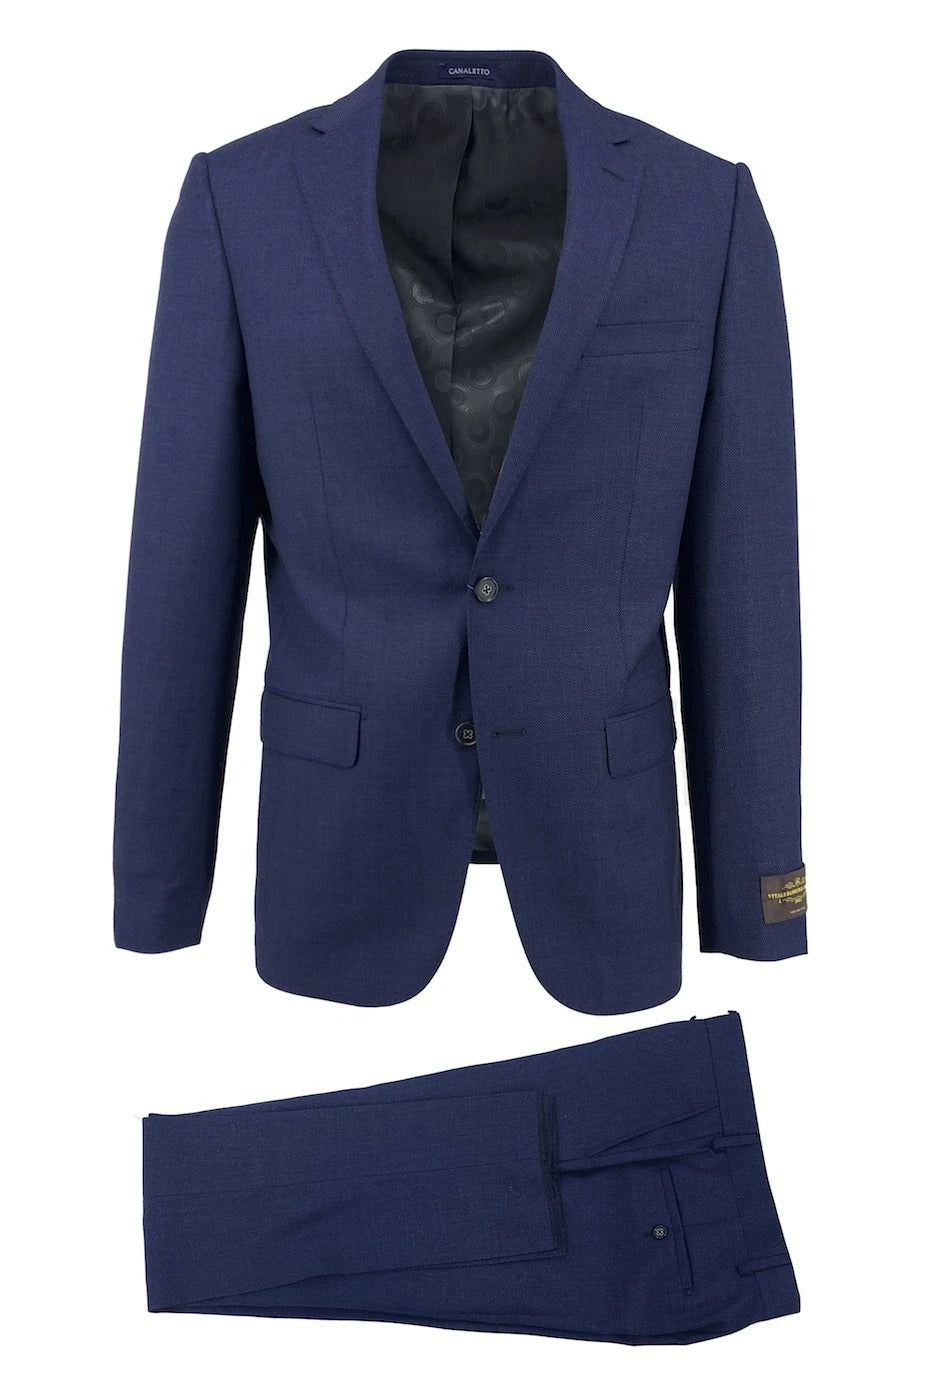 Canaletto Navy Nailhead Dolcetto Modern Fit Pure Wool Suit by Vitale Barberis Canonico Cloth CV511.801/86